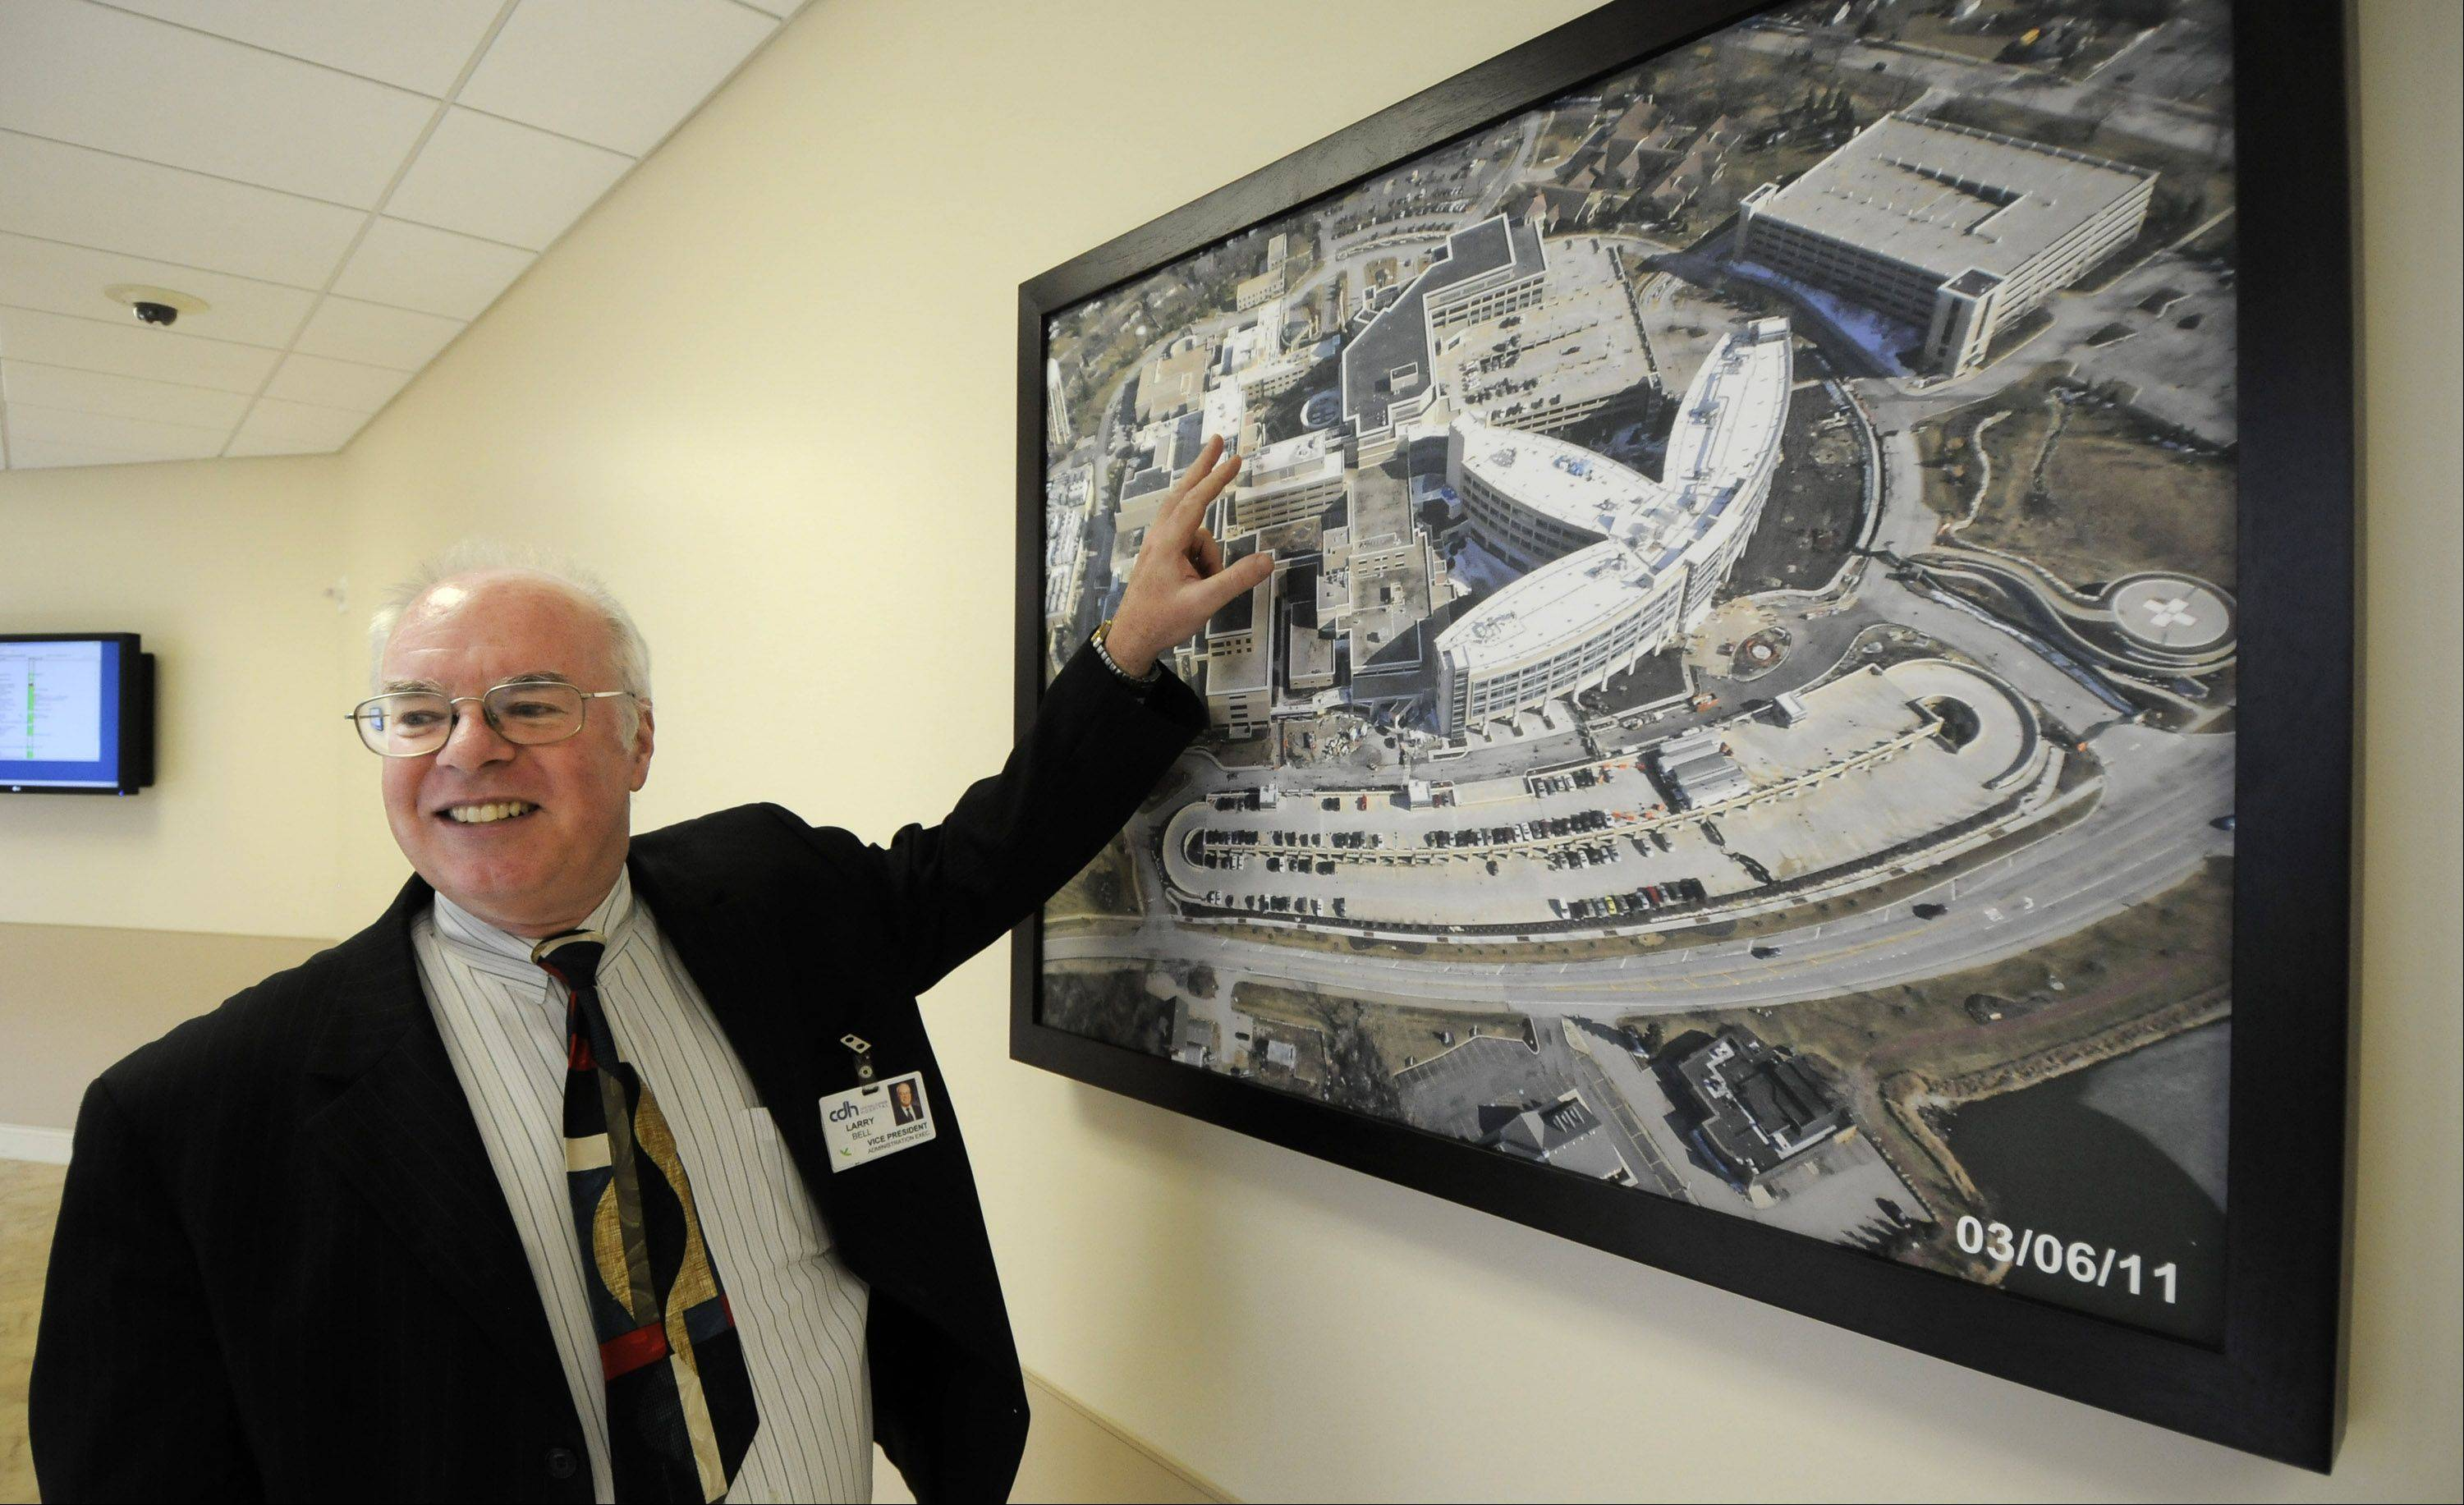 Larry Bell, vice president of construction at Central DuPage Hospital in Winfield, talks about the new patient pavilion that opens next month.